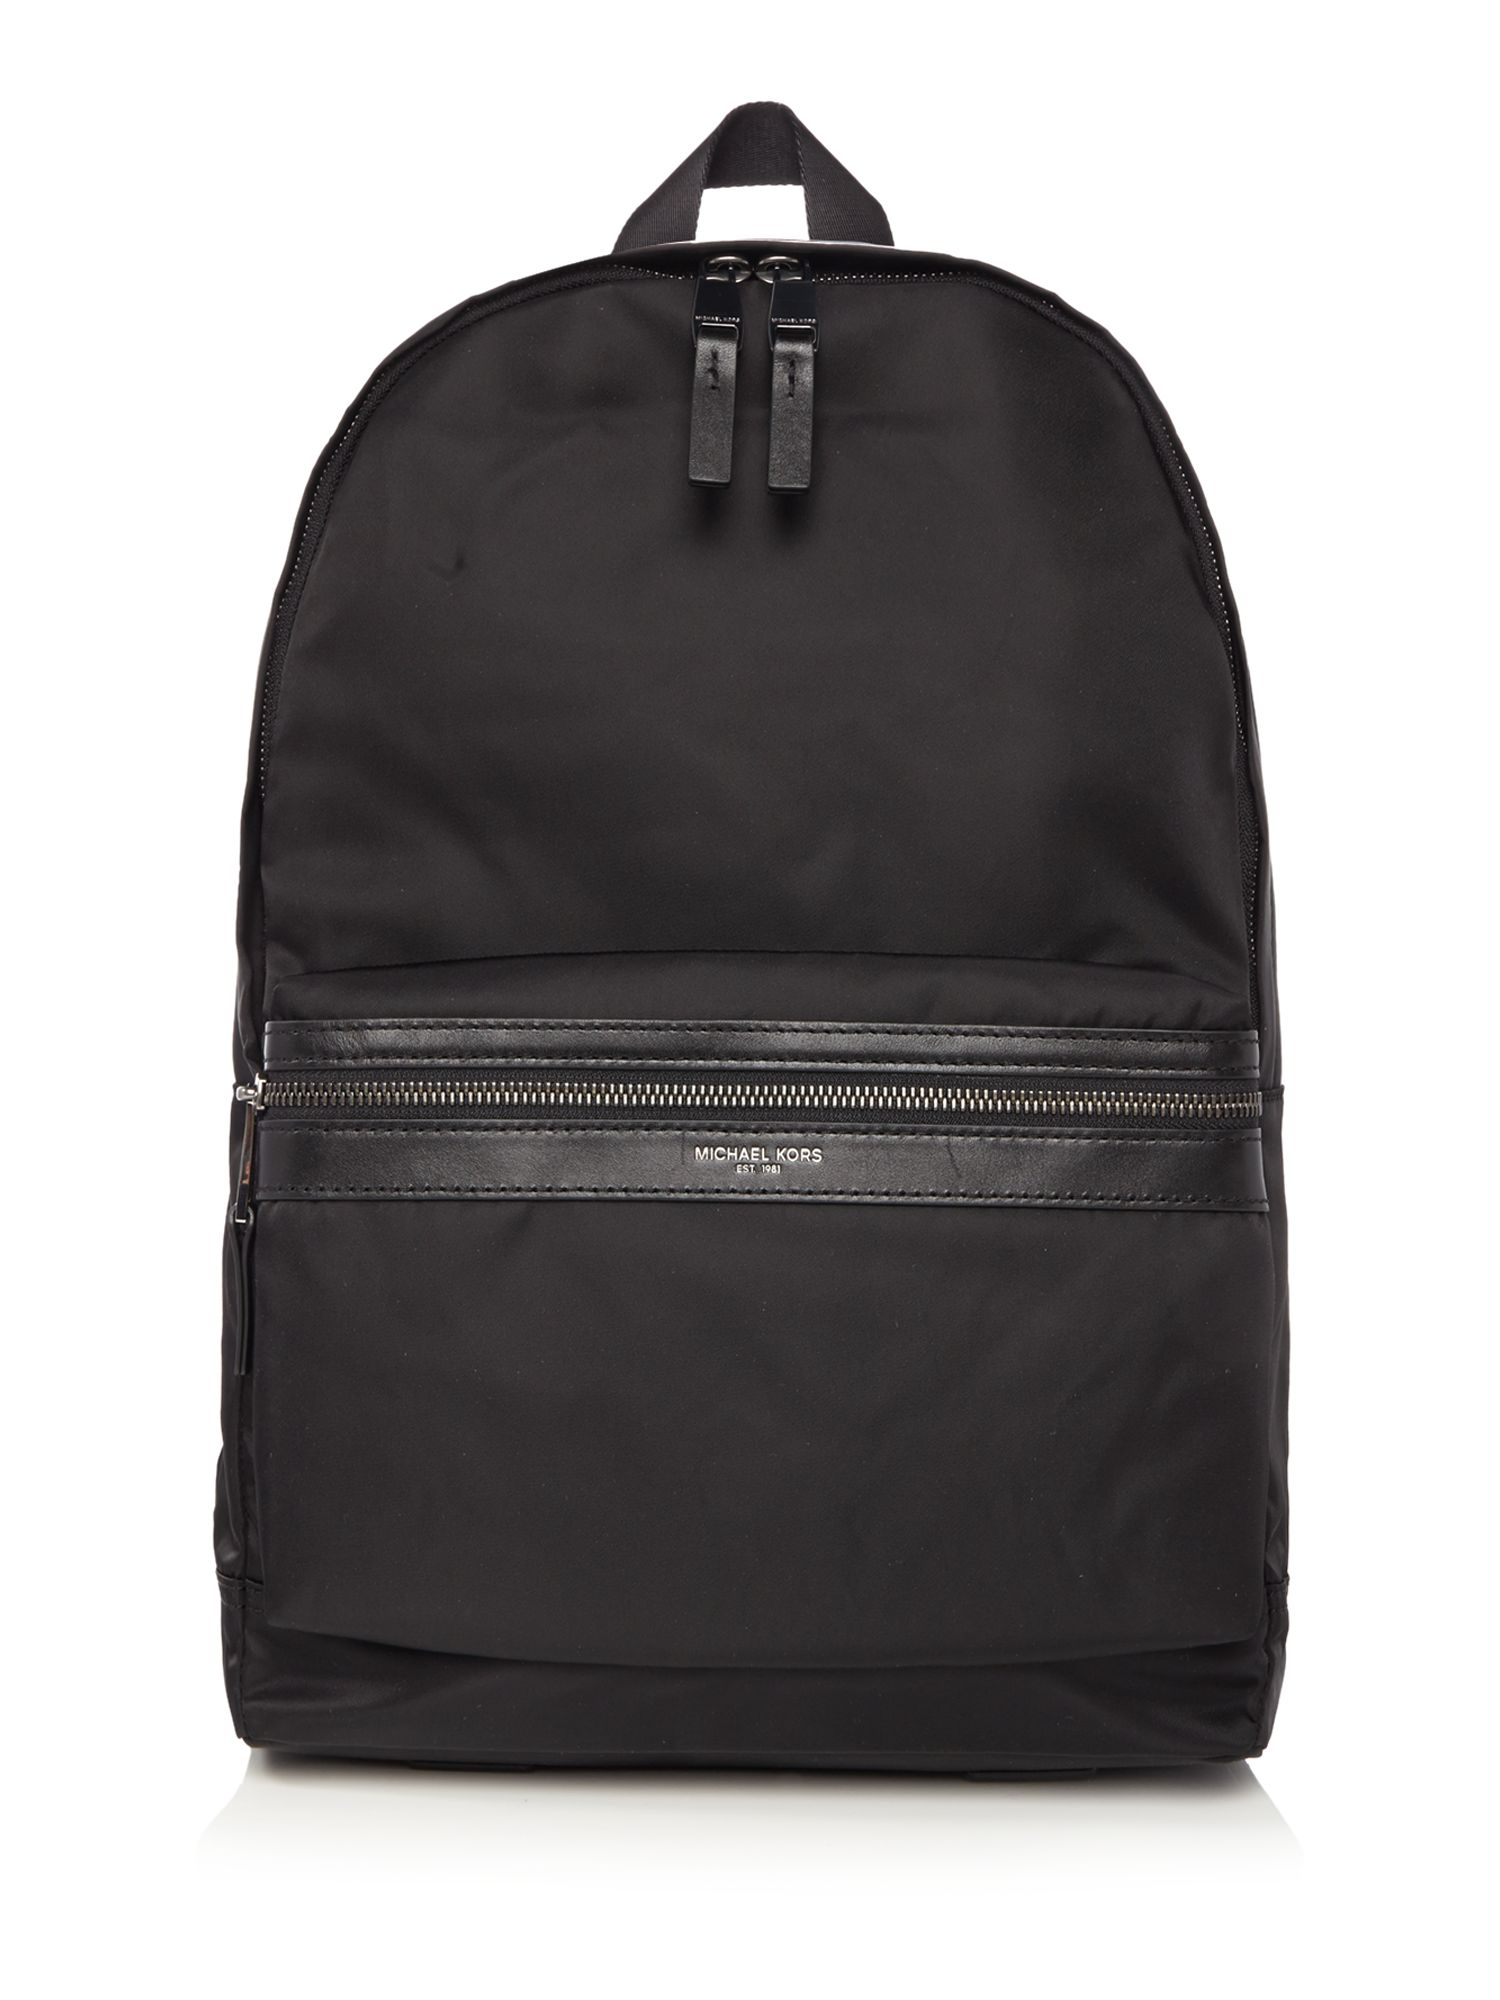 917c17320953 Paul Smith Mens Black Canvas Travel Backpack- Fenix Toulouse Handball